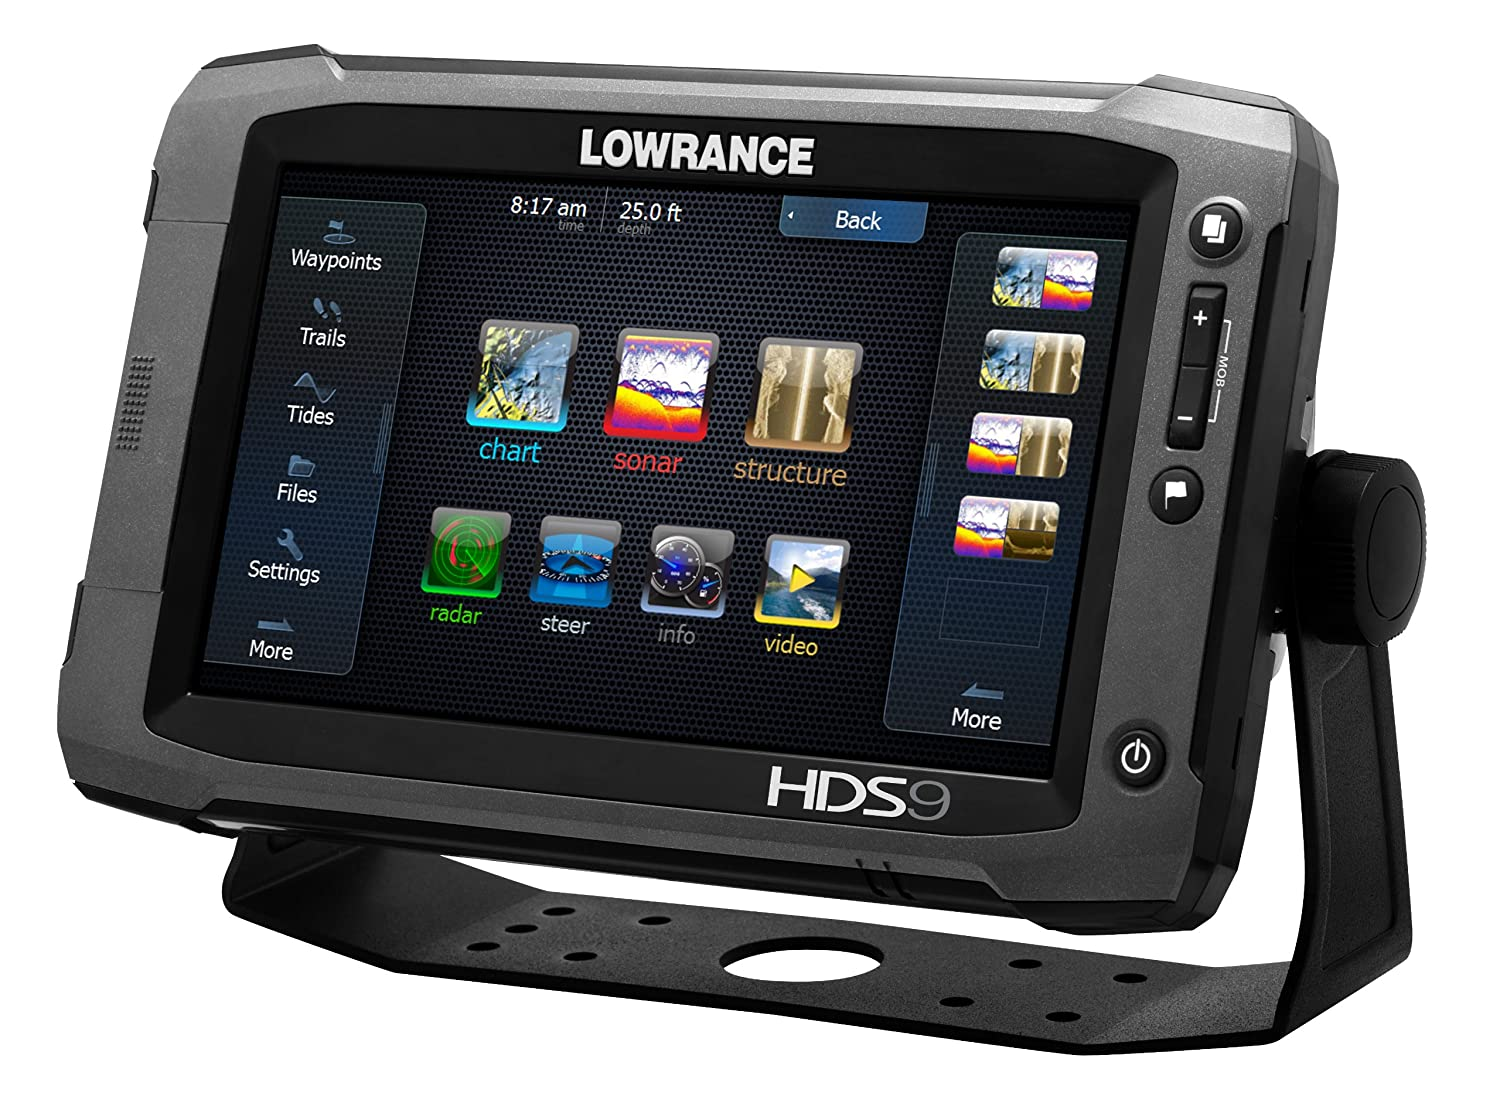 Lowrance 000 10770 001 Hds 9 Gen2 Touch With Inch Lcd Sonichub Wiring Diagram Touchscreen Multi Function Display Plotter And Built In Depth Sounder No Transducer